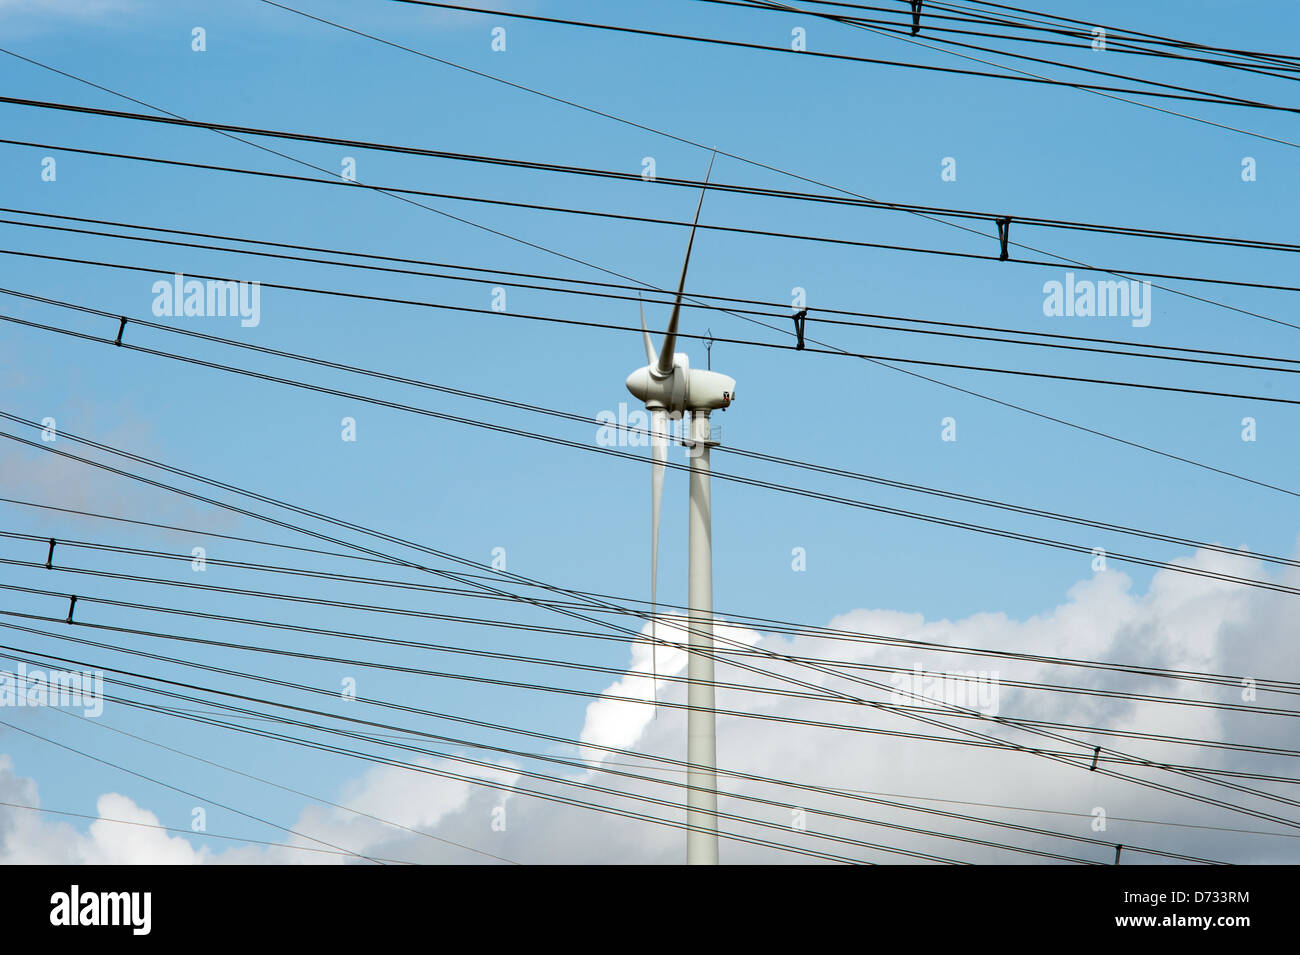 Remptendorf, Germany, power lines and wind turbine Stock Photo